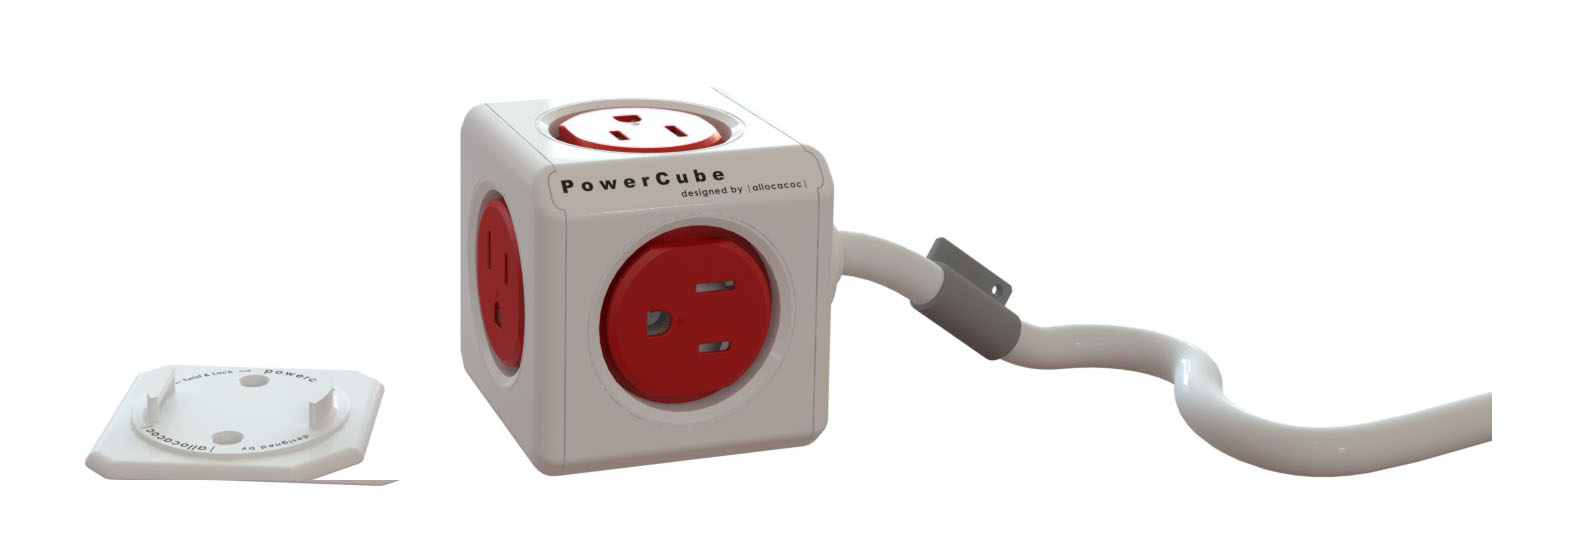 Power Cube  4300USEXPC PowerCube Extended 5 outlets 5' cord Red